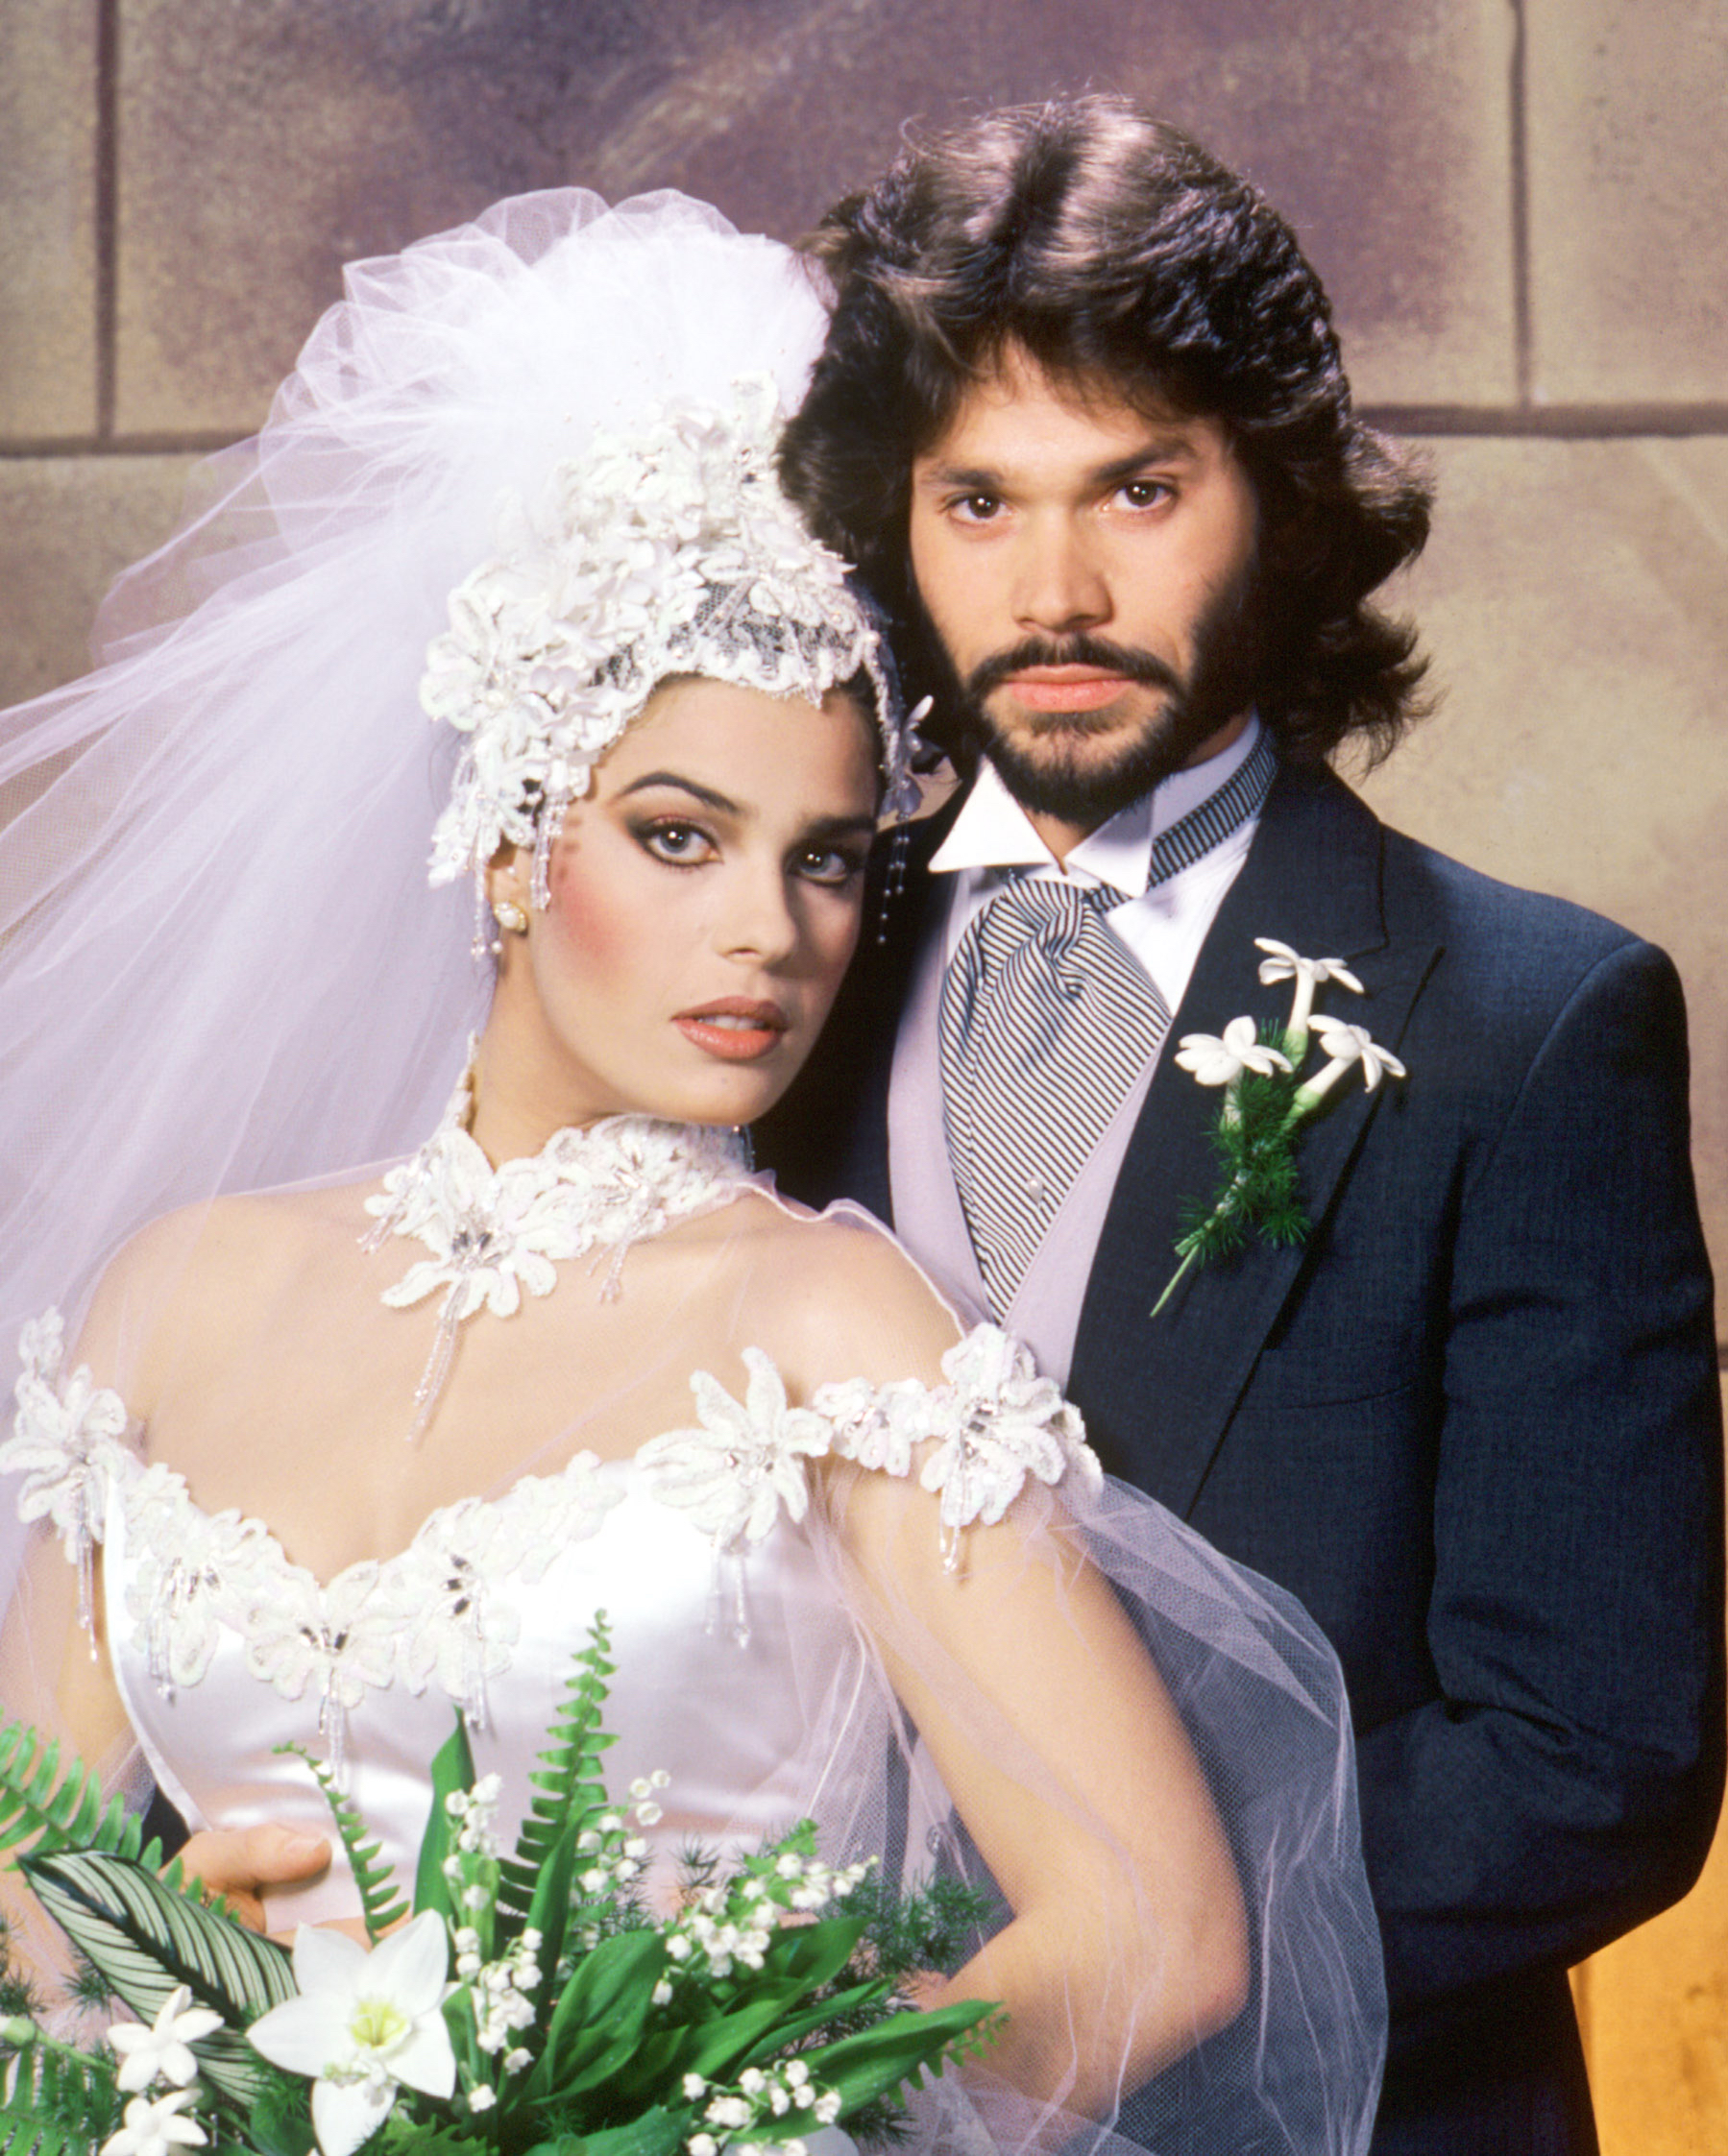 days of our lives bo and hope brady wedding kristian alfonso peter reckell